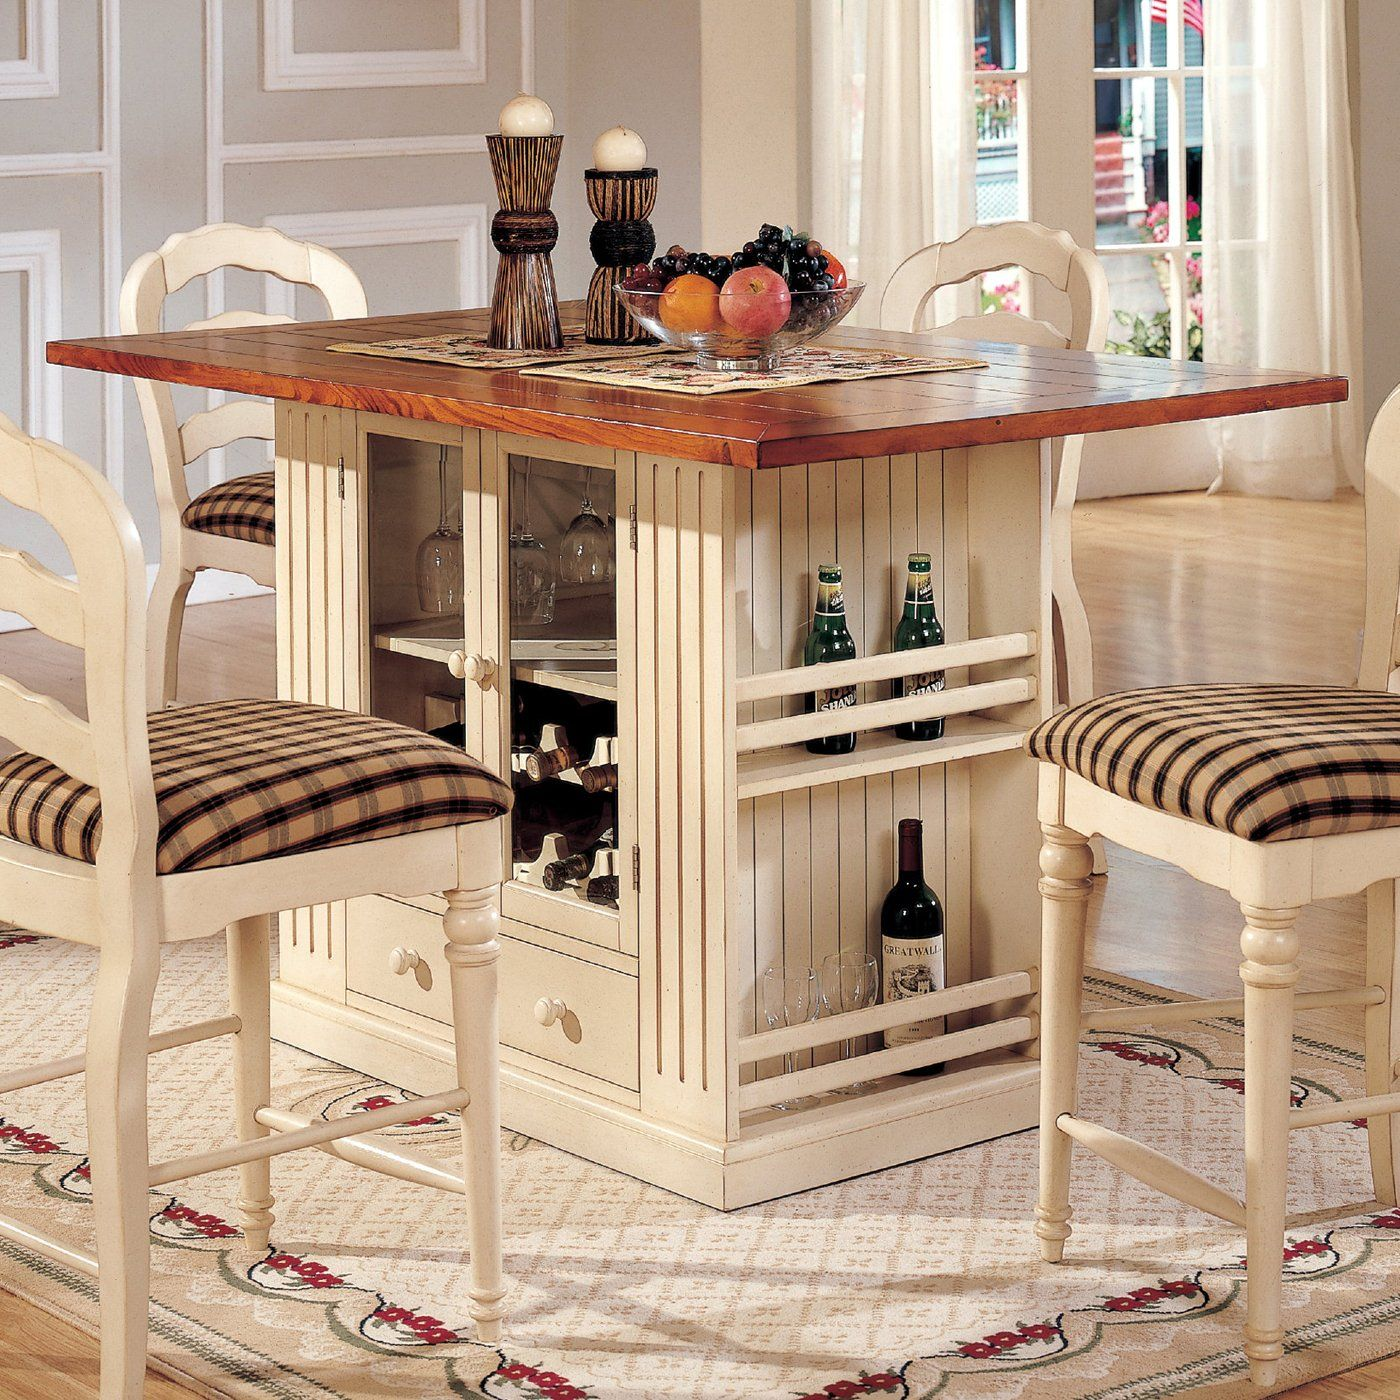 5 Long X 3 Wide X 3 High Kitchen Island Table Kitchen Table With Storage Kitchen Island With Seating